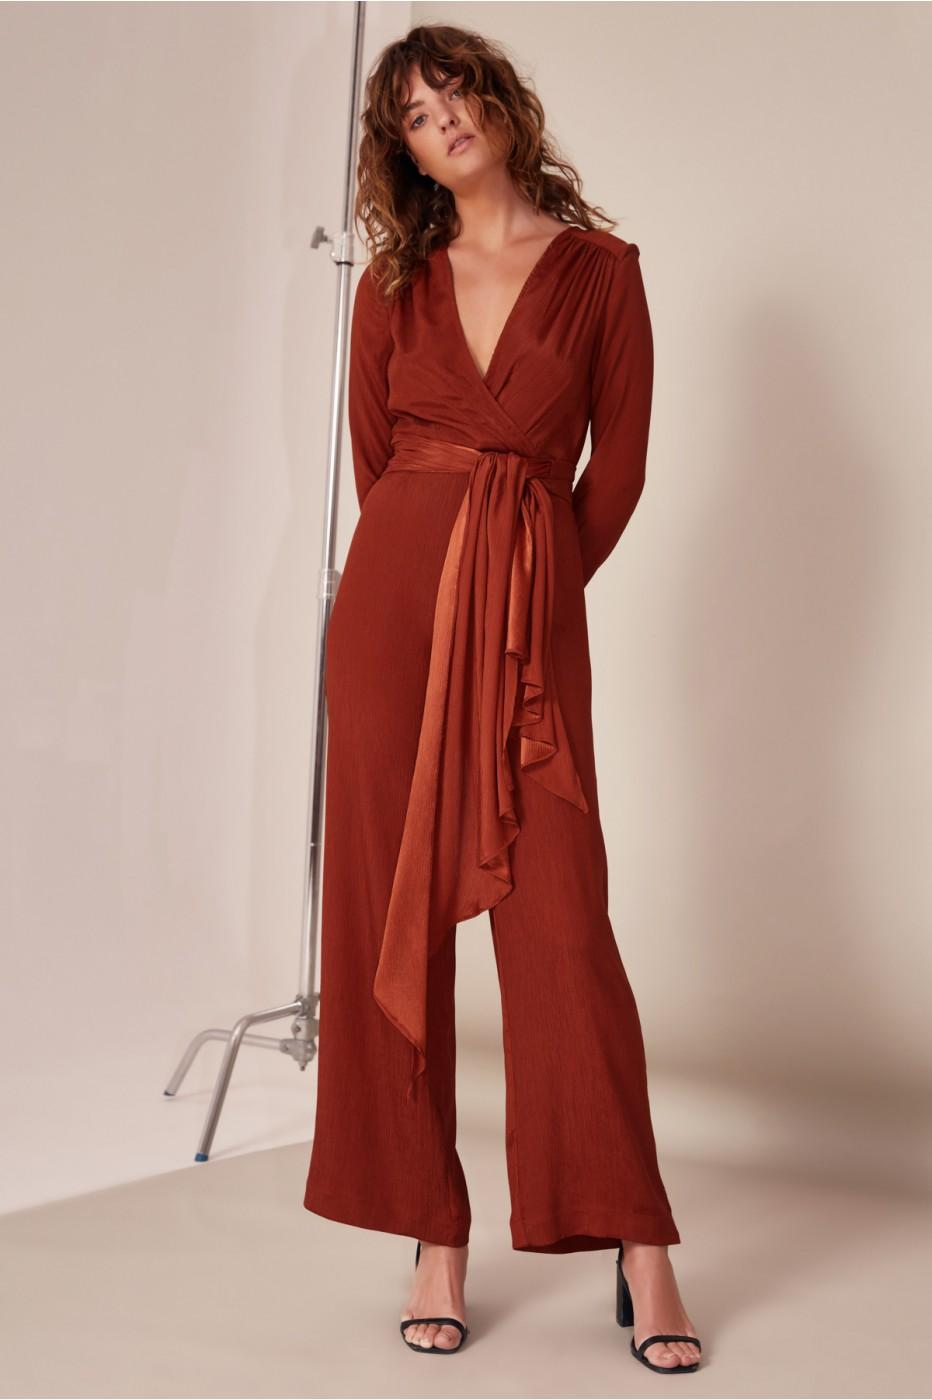 2bfb2adcc7 C Meo Collective Eminence Jumpsuit In Copper